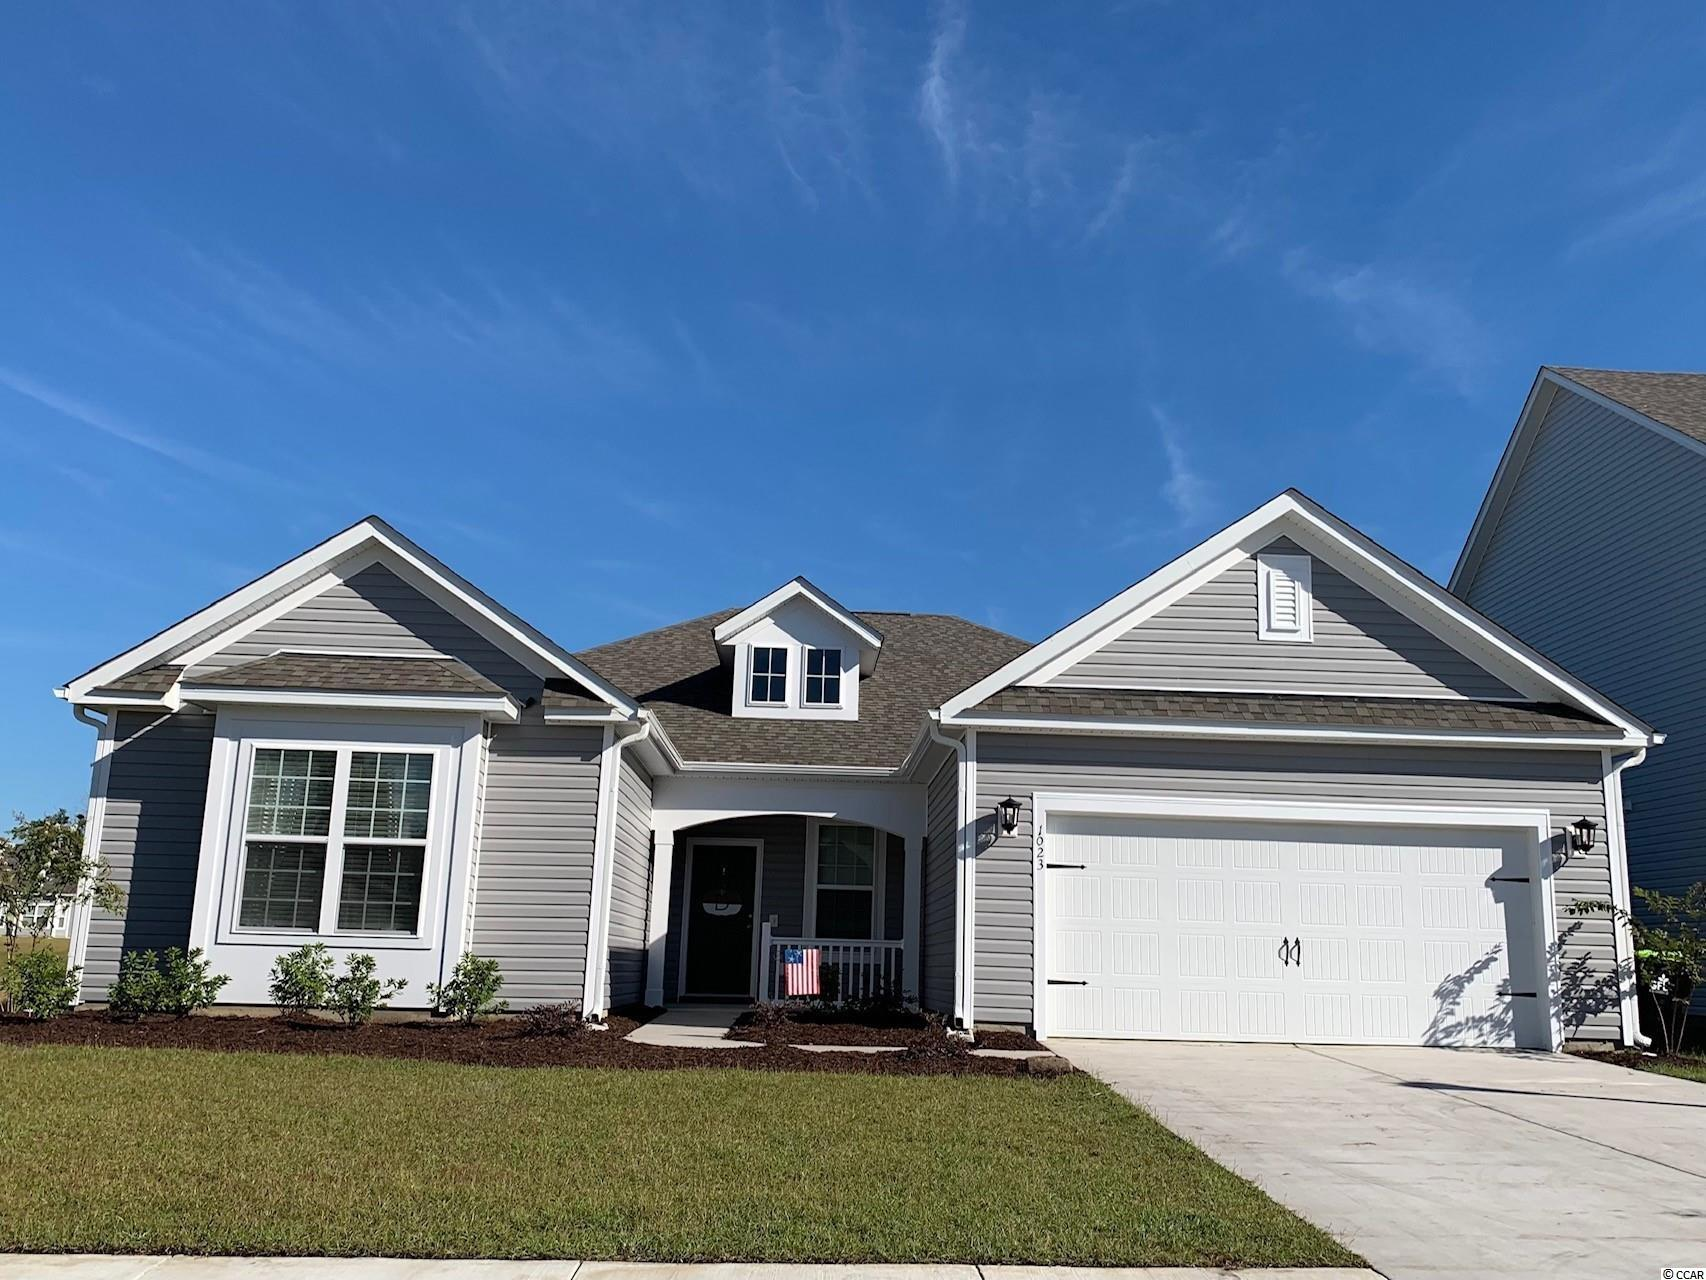 Waterfront! Reynolds-TRL features 3 bedrooms, 2.5 baths, a marvelous open concept design, a 32ft screened porch, and a lake front home site. The kitchen features stainless steel Whirlpool appliances, included refrigerator and laundry package, White shaker Master Brand cabinets, a waste basket drawer-cabinet, Quartz counter tops, and decorative Progress Lighting Glass Pendants over the Kitchen Island. Rev wood flooring throughout living areas and primary bedroom. Crown molding, chair rail and picture molding, and a Dining room tray ceiling were added to enhance the beauty of this well appointed home. The Great room is located off the kitchen. This marvelous Great room boasts a vaulted ceiling, and additional ceiling fan. The Primary Bedroom includes double doors that lead into the Primary Bath. The Primary Bath features a Daltile walk-in shower with Level 2 tile, a double vanity, and Brushed Nickel Moen bath plumbing fixtures. Other value-added features include: White faux wood blinds, Sherwin Williams Agreeable Gray wall paint and White ceiling paint, a tankless natural gas Rinnai Water Heater, gutters, irrigation, foundation trees, and shrubs. Belle Mer homes are Energy Star Certified creating amore comfortable home at a lower cost. Belle Mer amenities include weekly curbside trash collection, sidewalks, a community pool, and clubhouse with a catering kitchen, exercise room, and gathering hall. Belle Mer features a premier location; less than 3 miles to the beach, across the street from 2 large shopping and dining venues, 3-4 miles to Market Common, and a short drive to Murrells Inlet or Myrtle Beach. Pictures are of same floorplan, features can be different.   We are allowed to sell one more home for May.